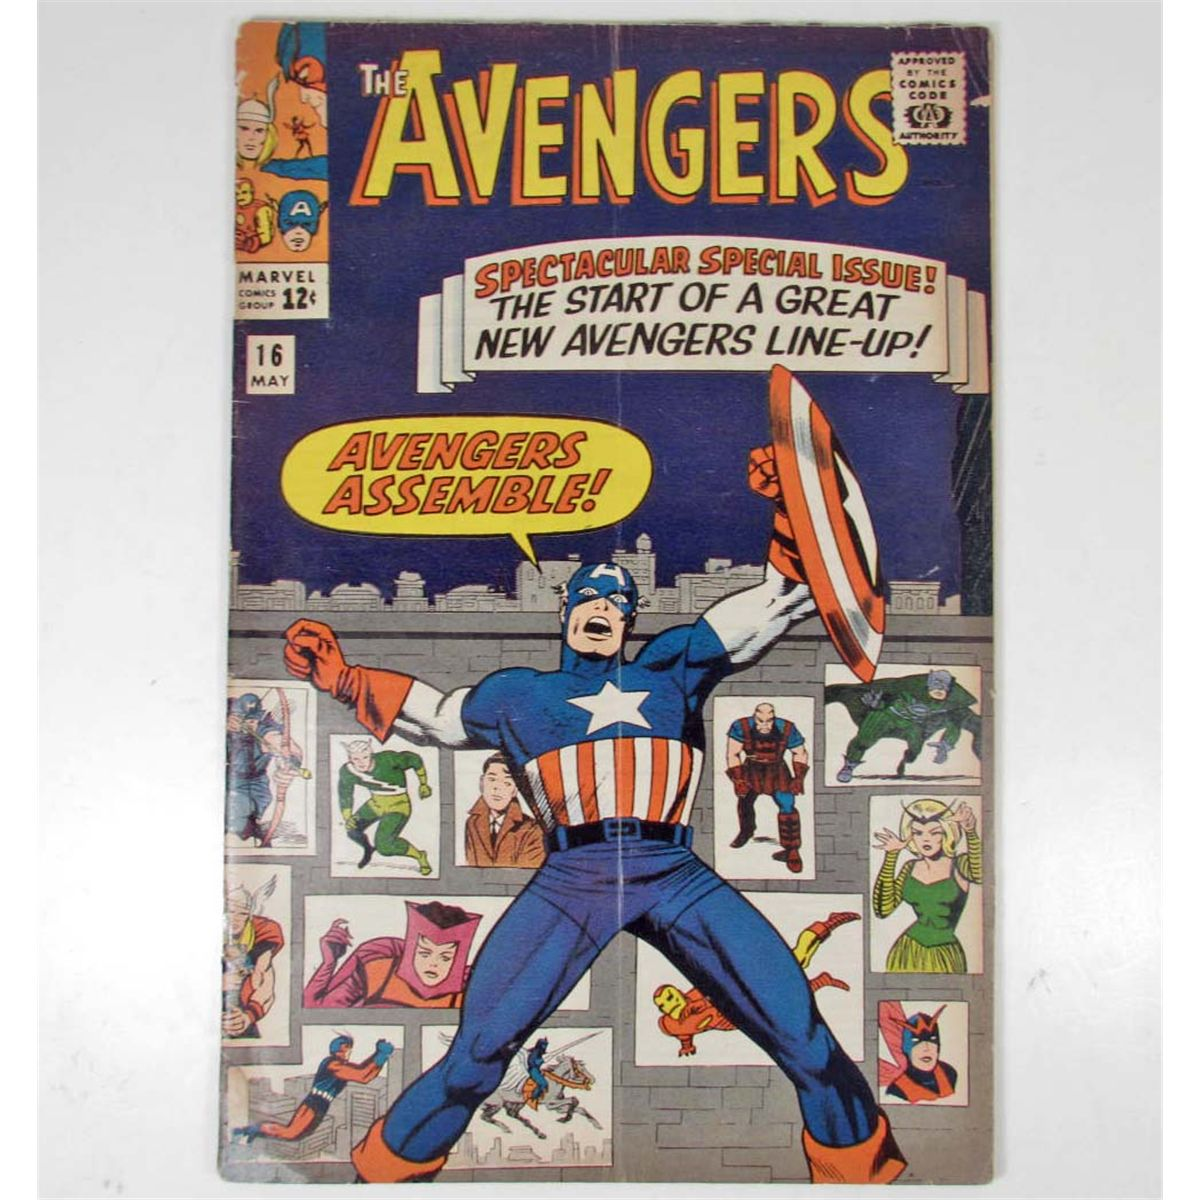 Free Comic Book Day Locations: THE AVENGERS NO. 16 COMIC BOOK